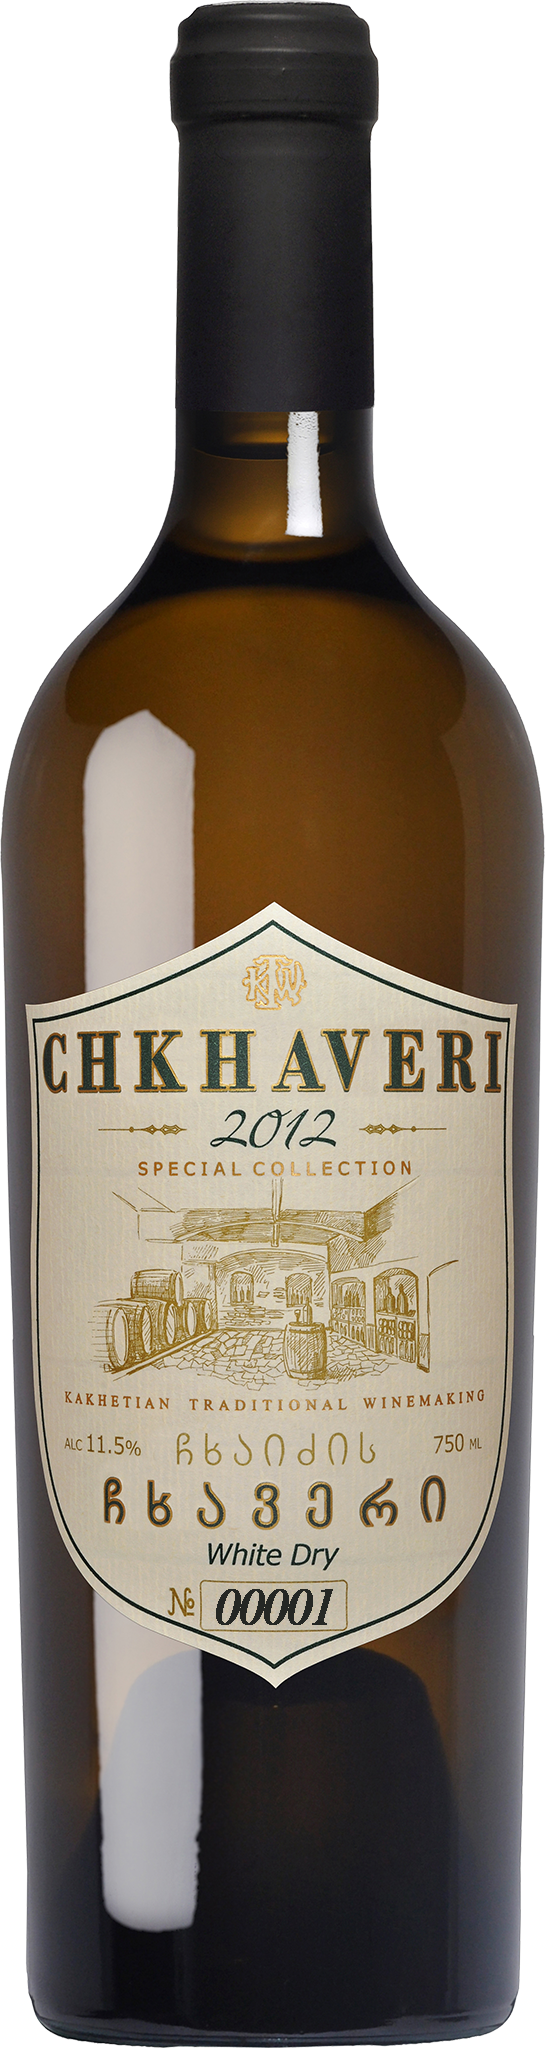 CHKHAVERI WEIßWEIN – SPECIAL COLLECTION